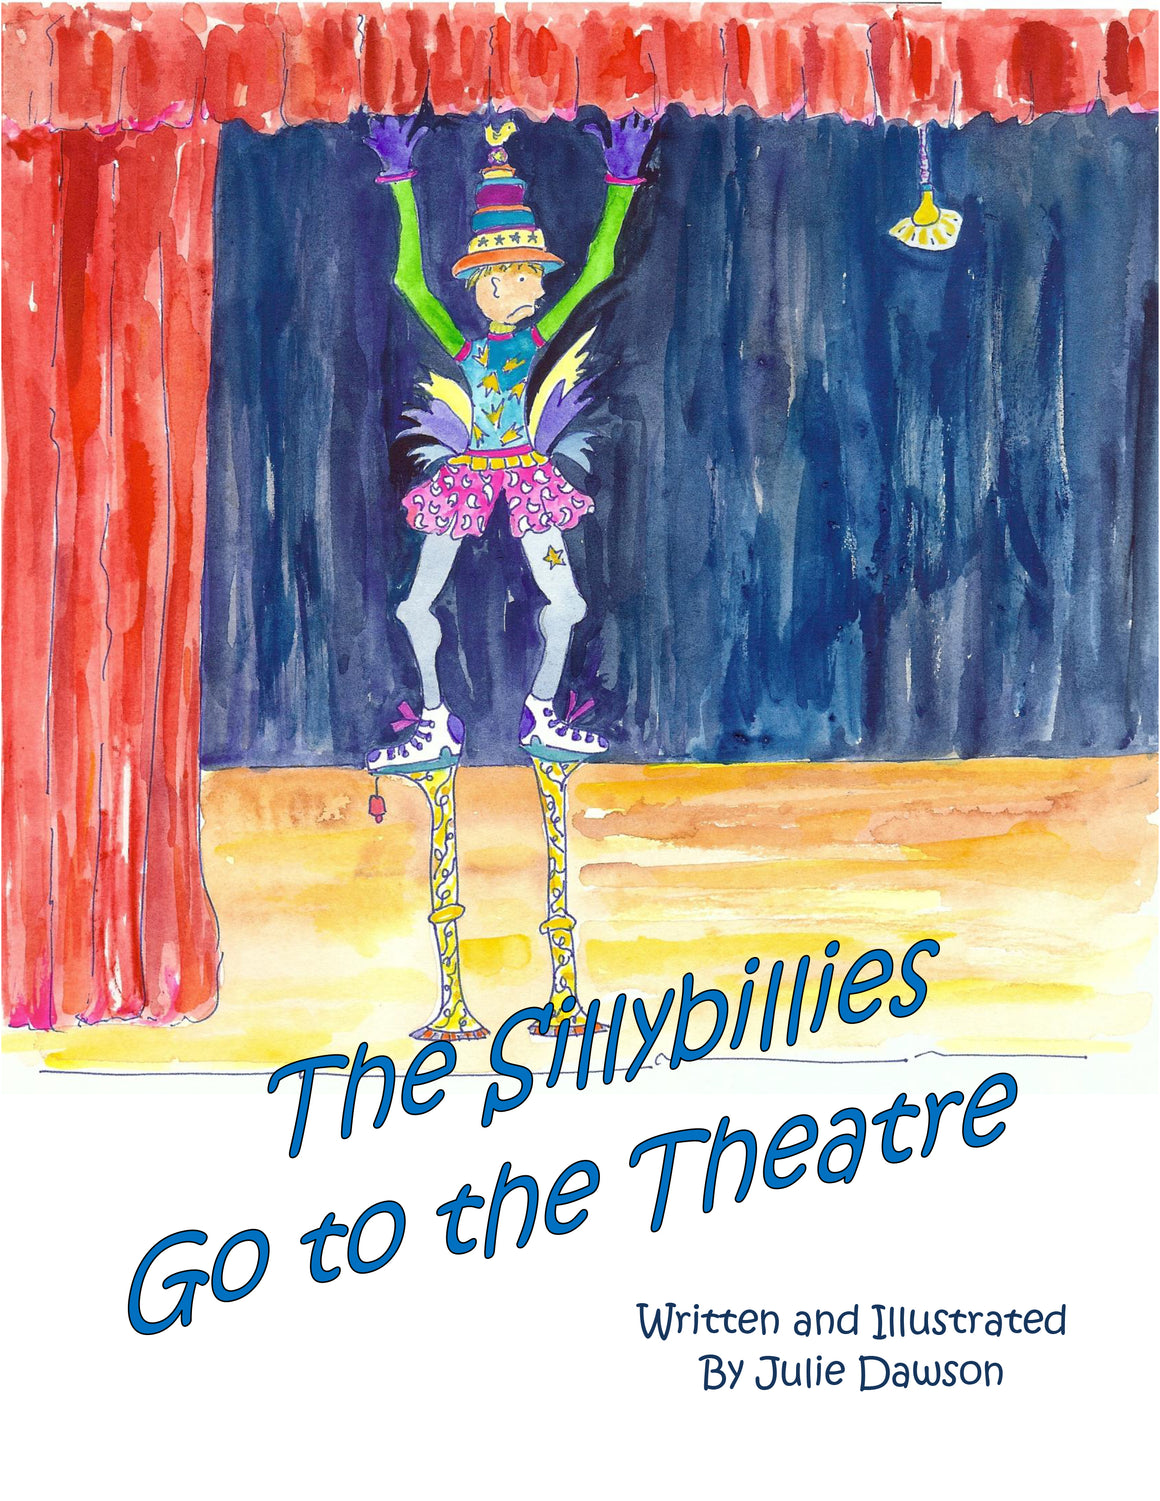 The Sillybillies Go to the Theatre